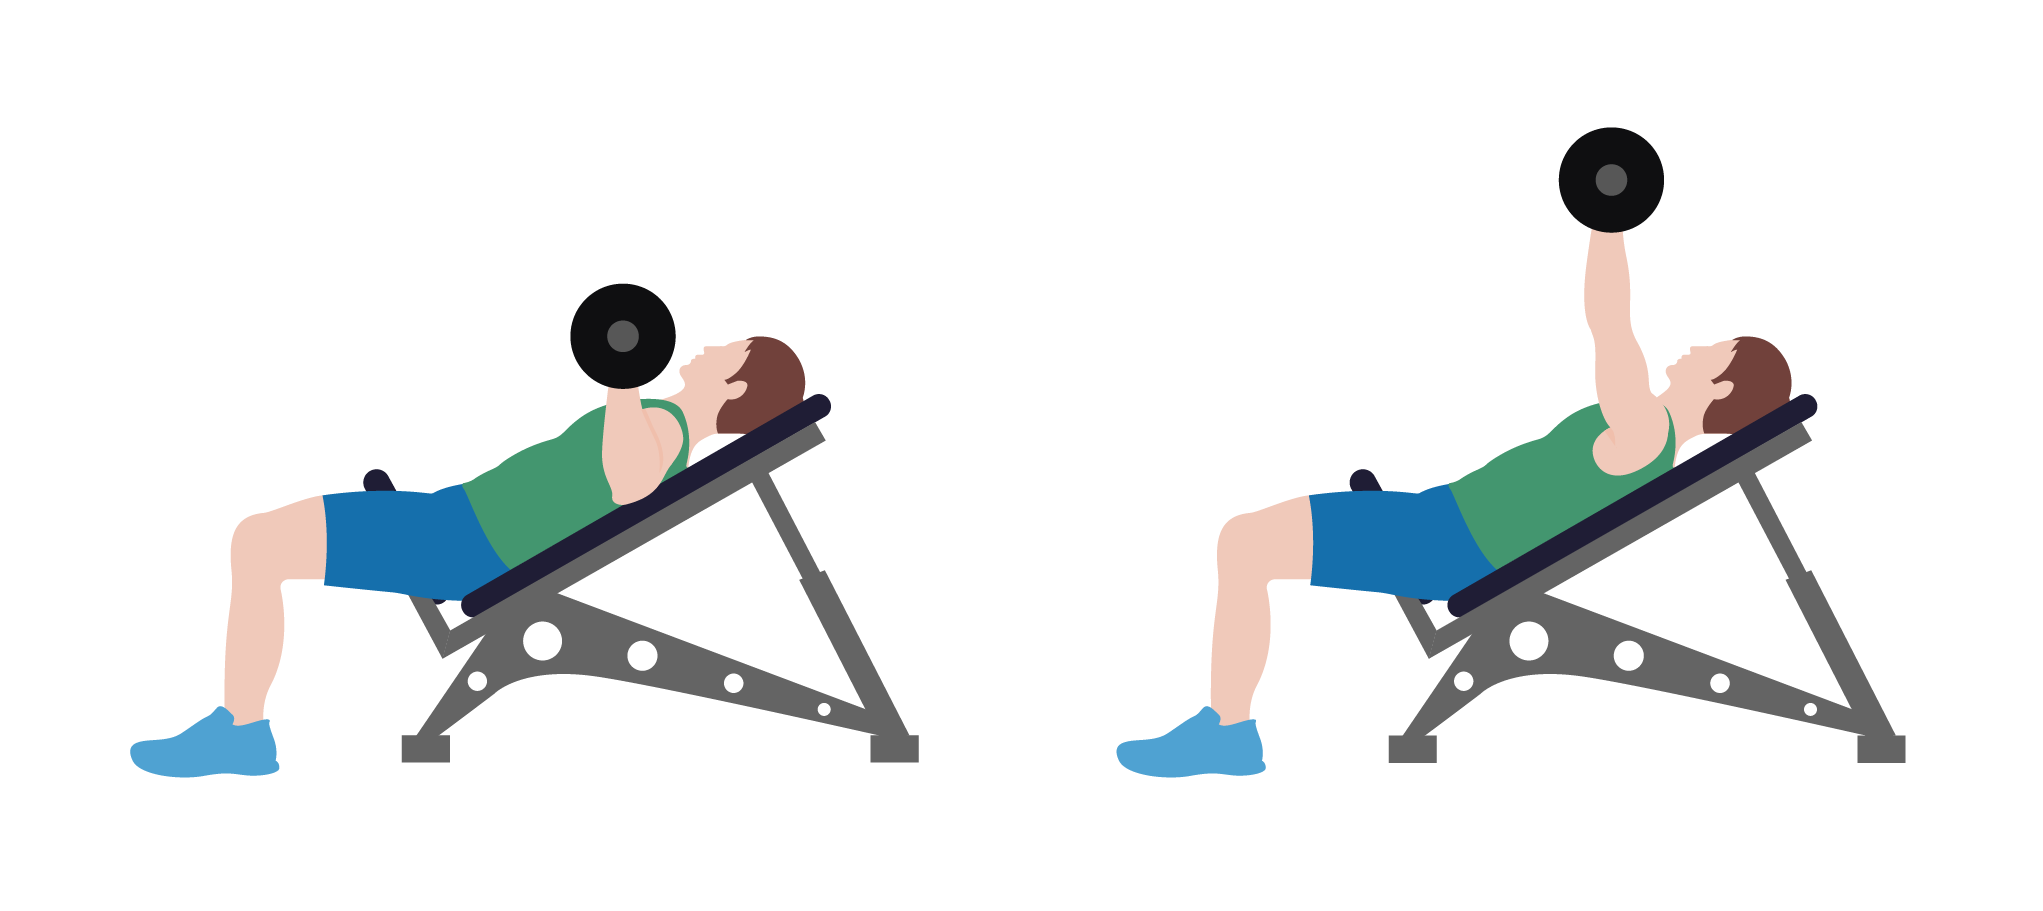 Dumbbells clipart bench press bar. The ultimate guide to